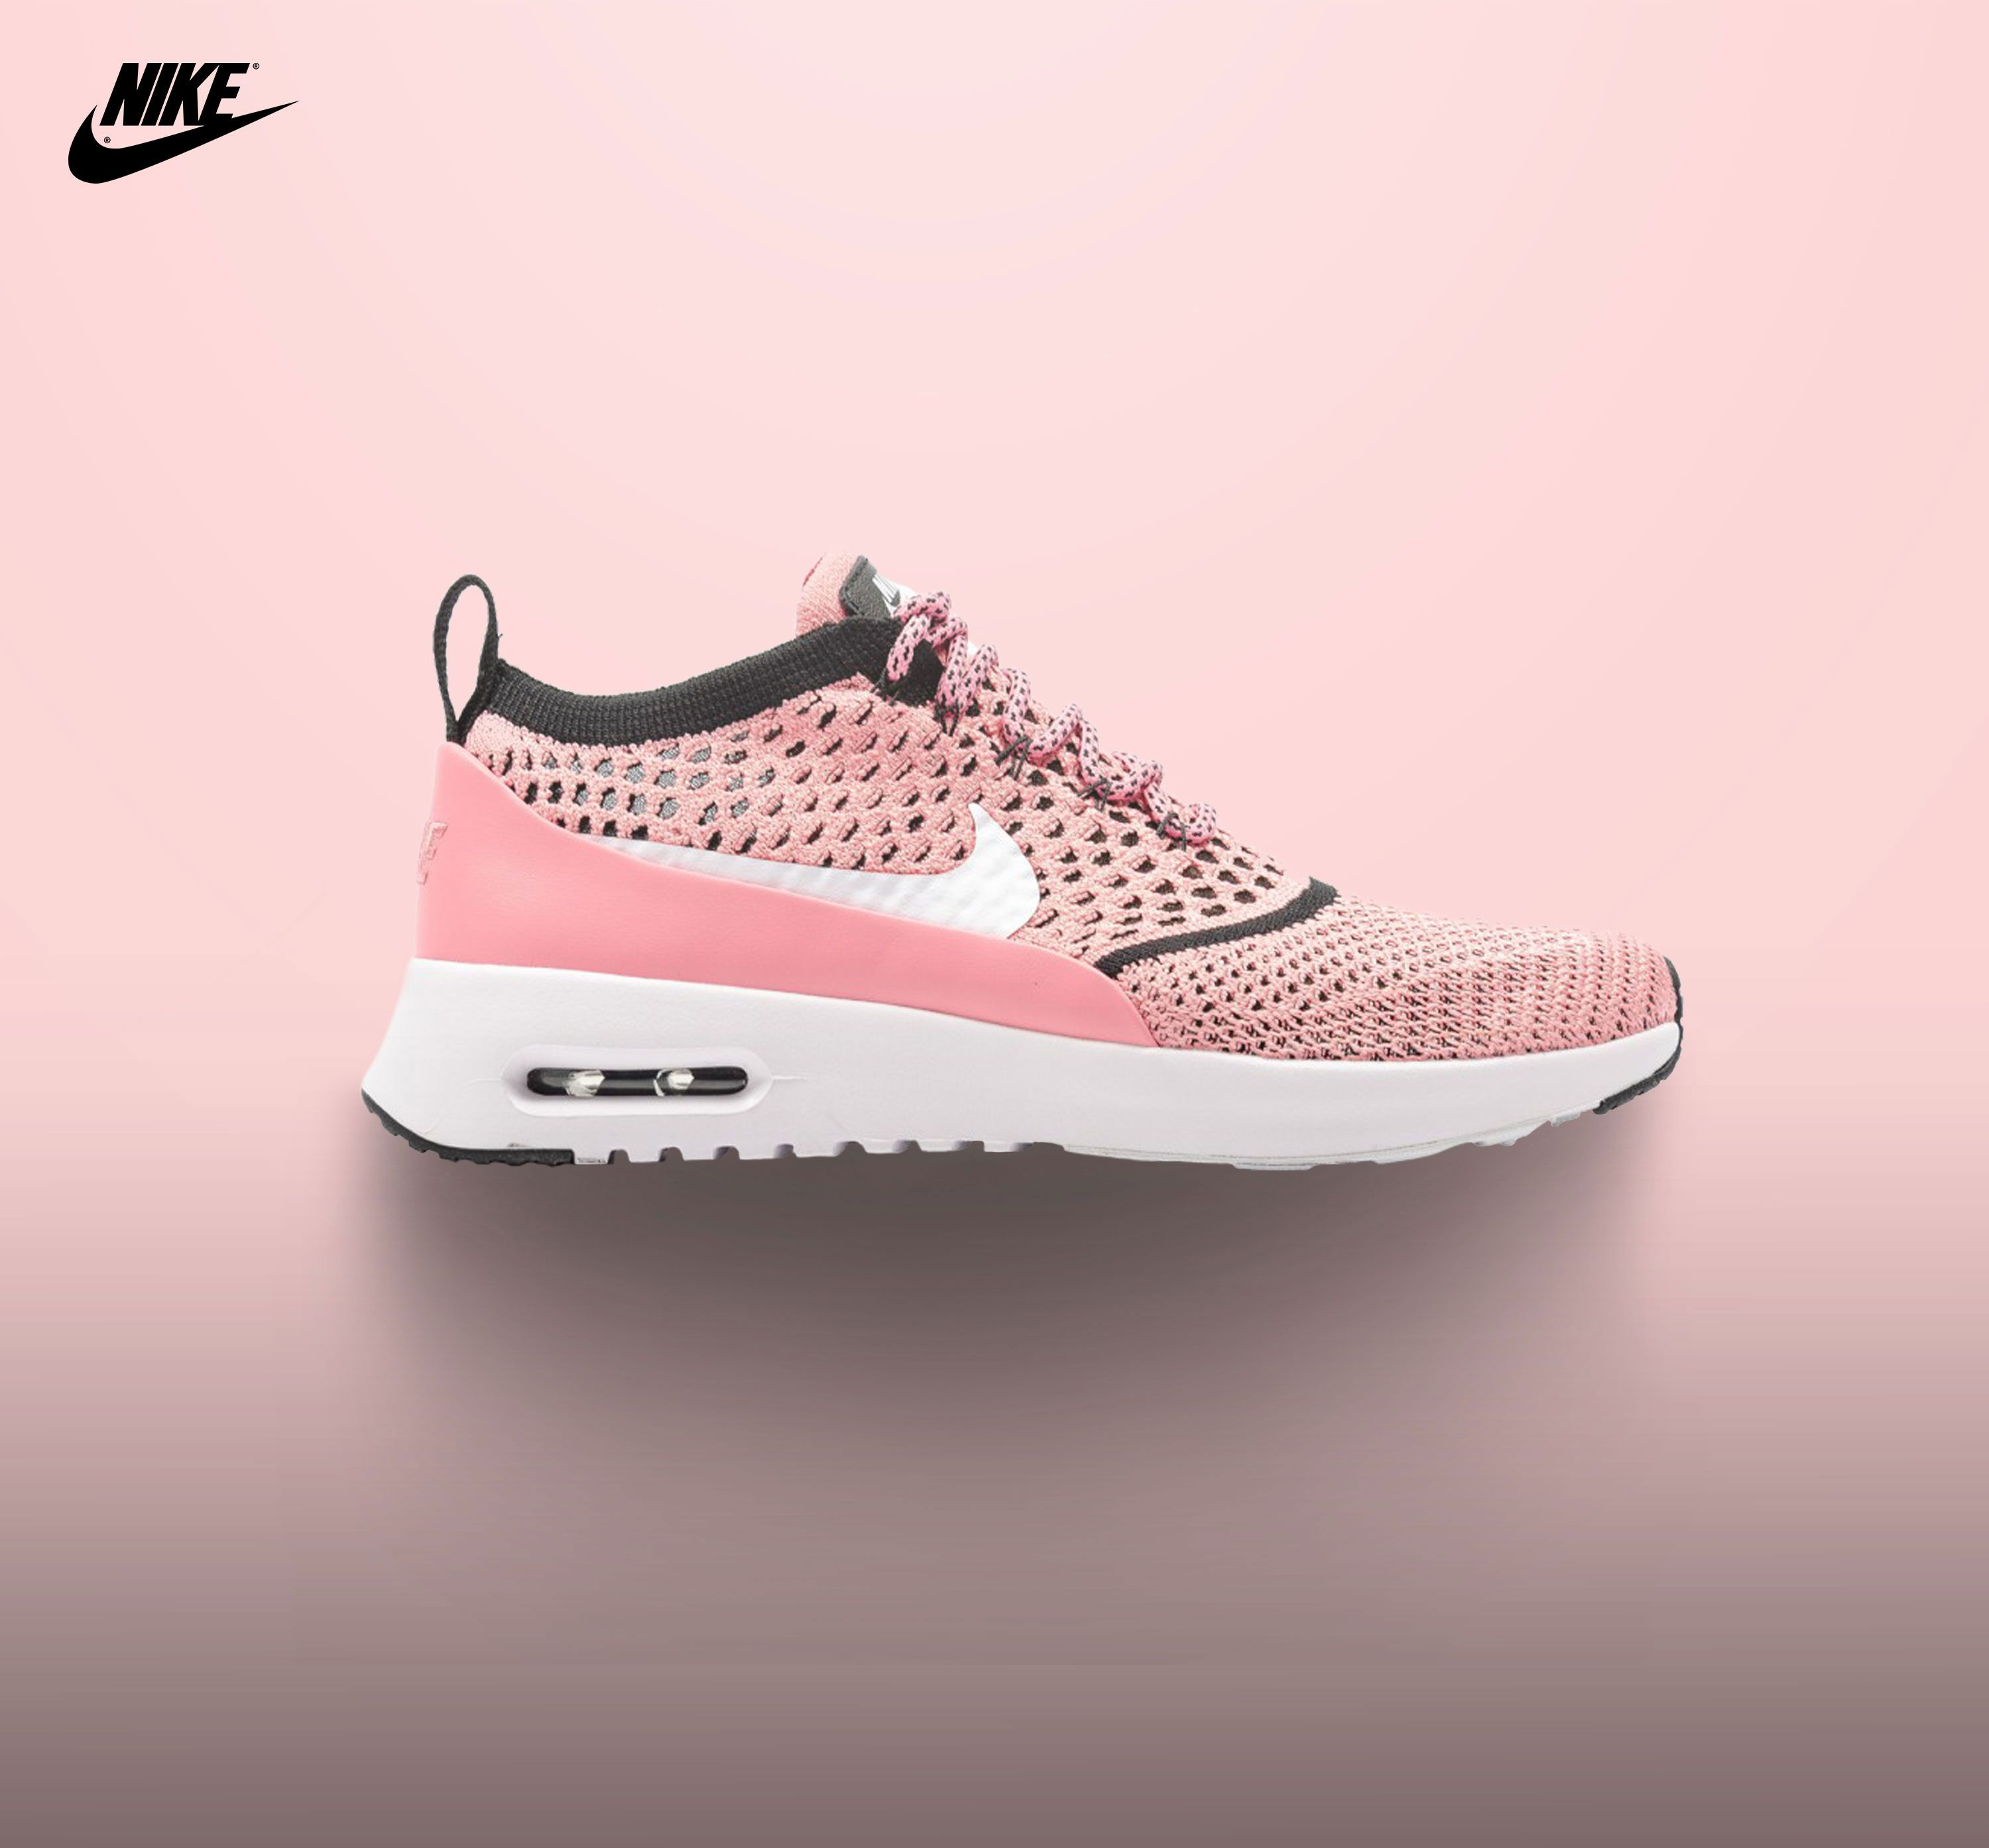 Nike Air Max Thea Pink/White 2017 #pink #sneakers #nike #shoes